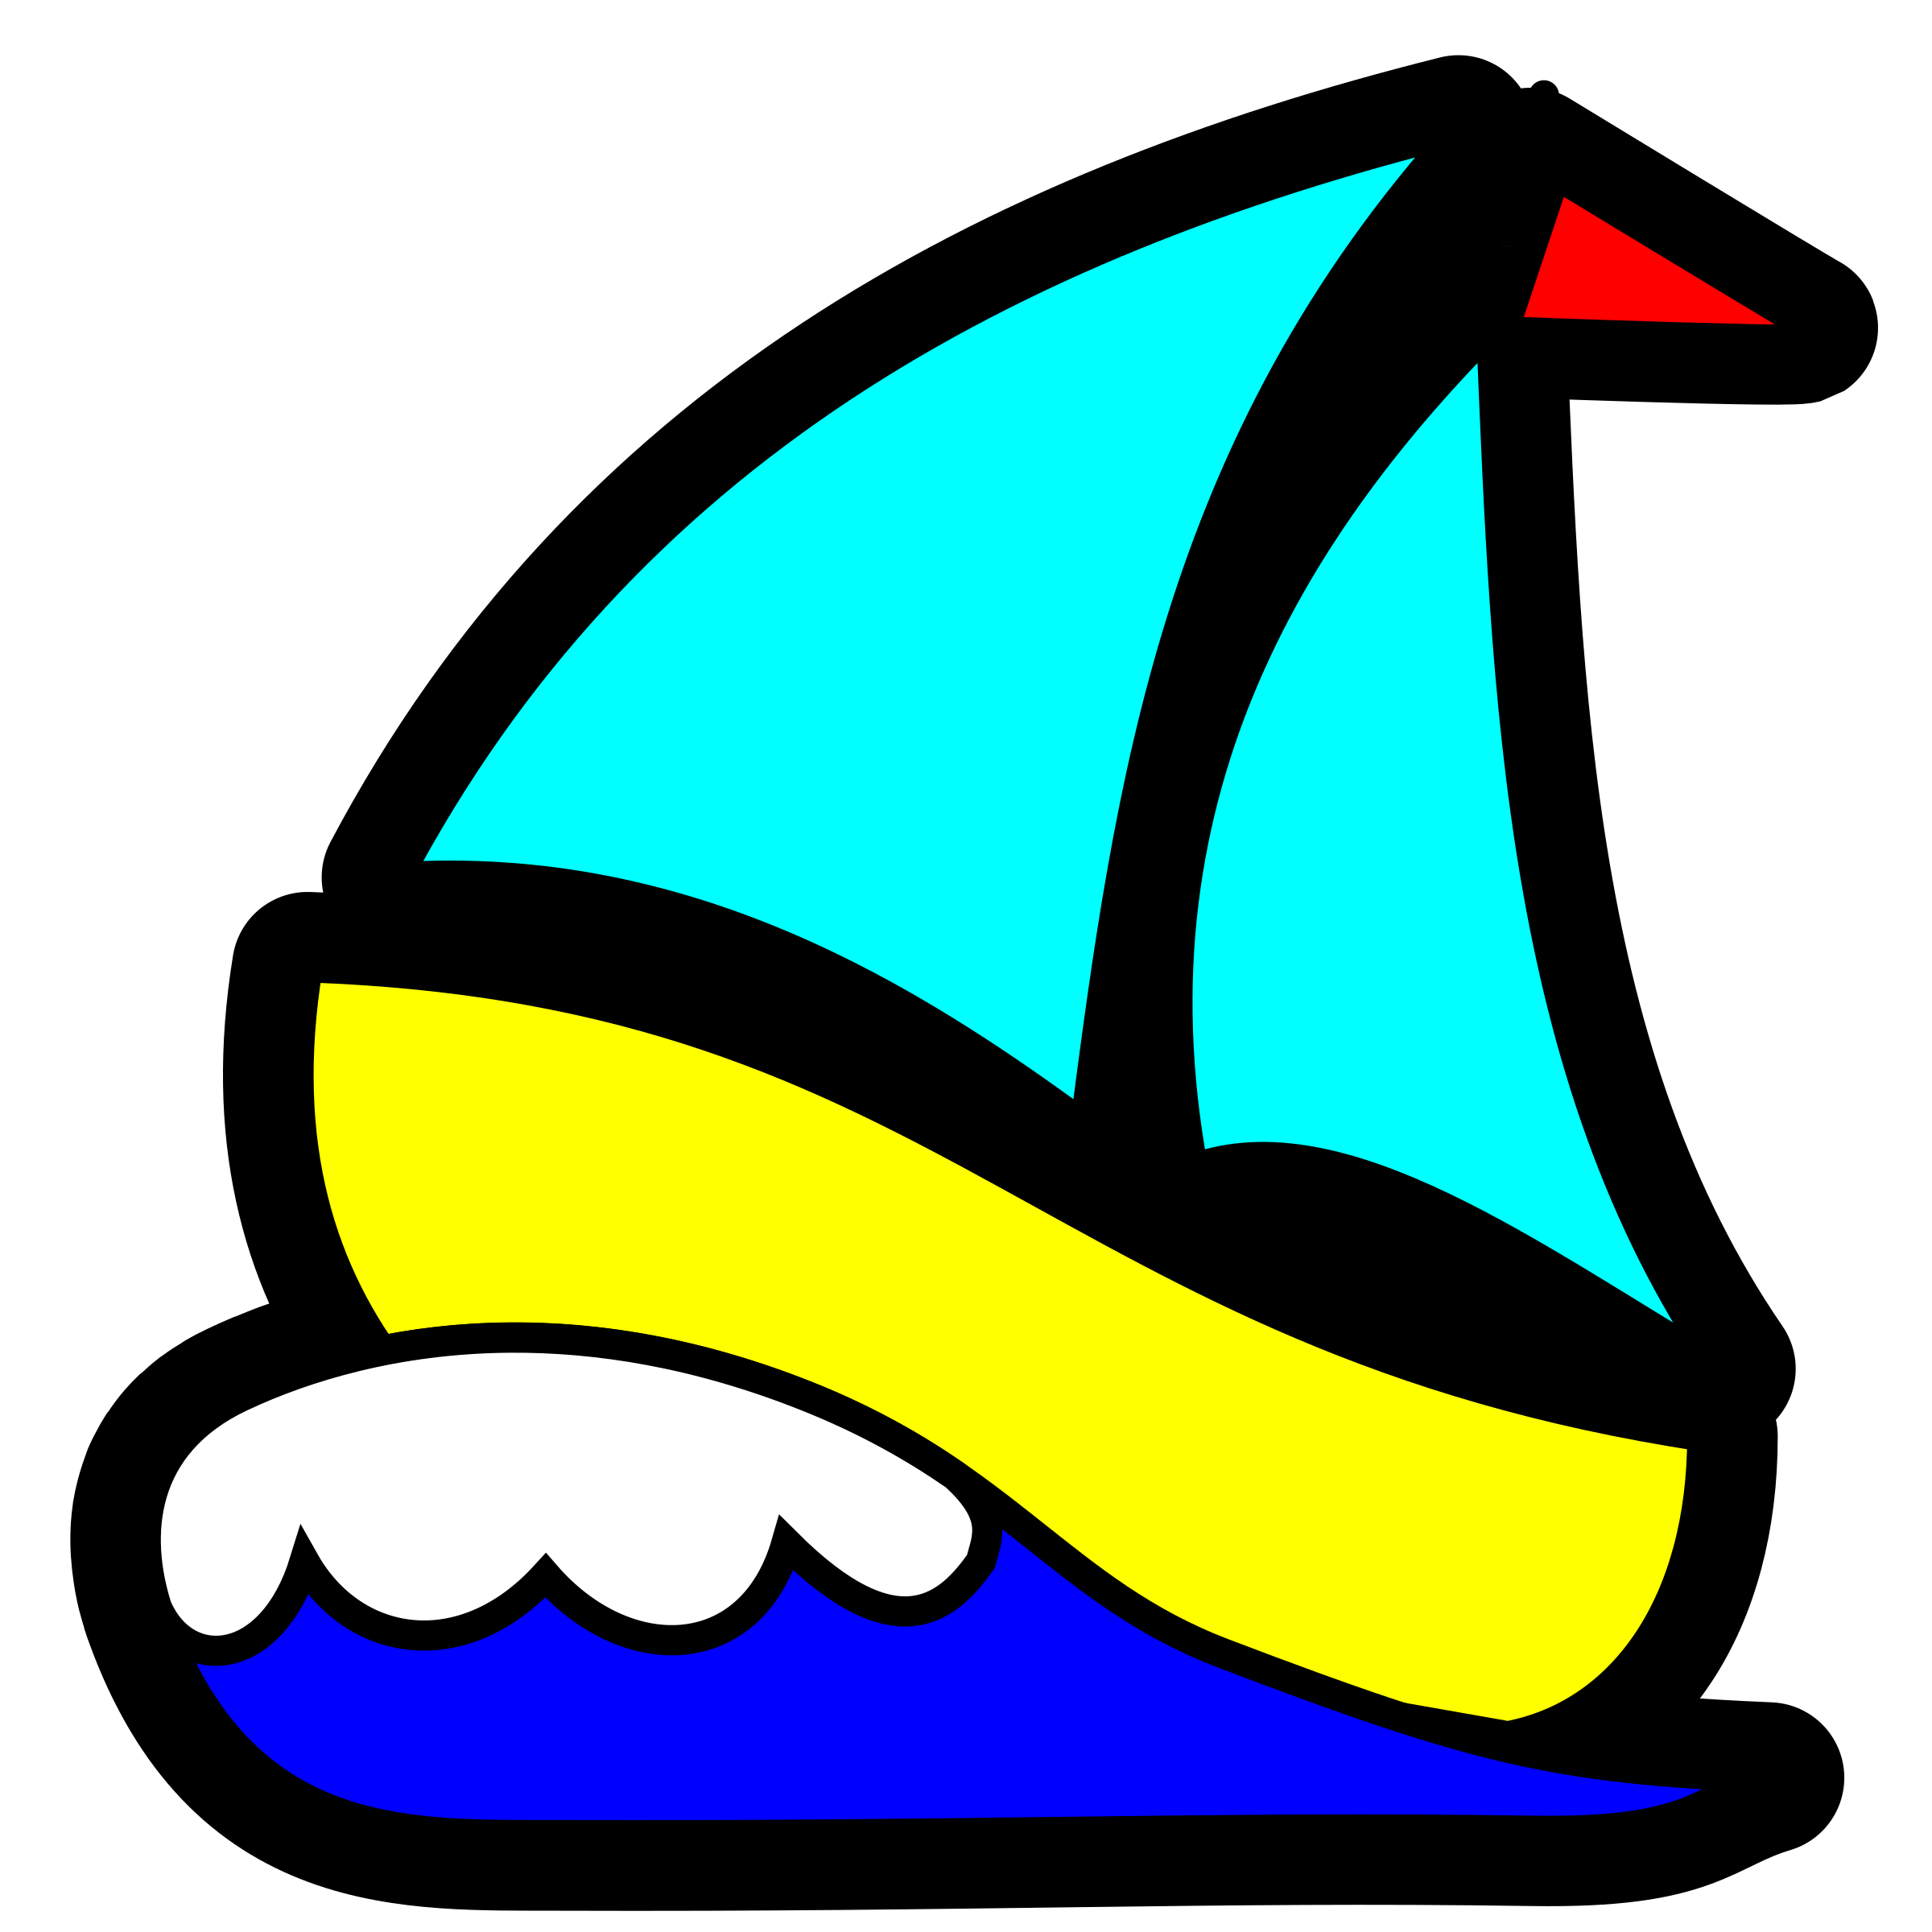 Clipart - Sailboat icon